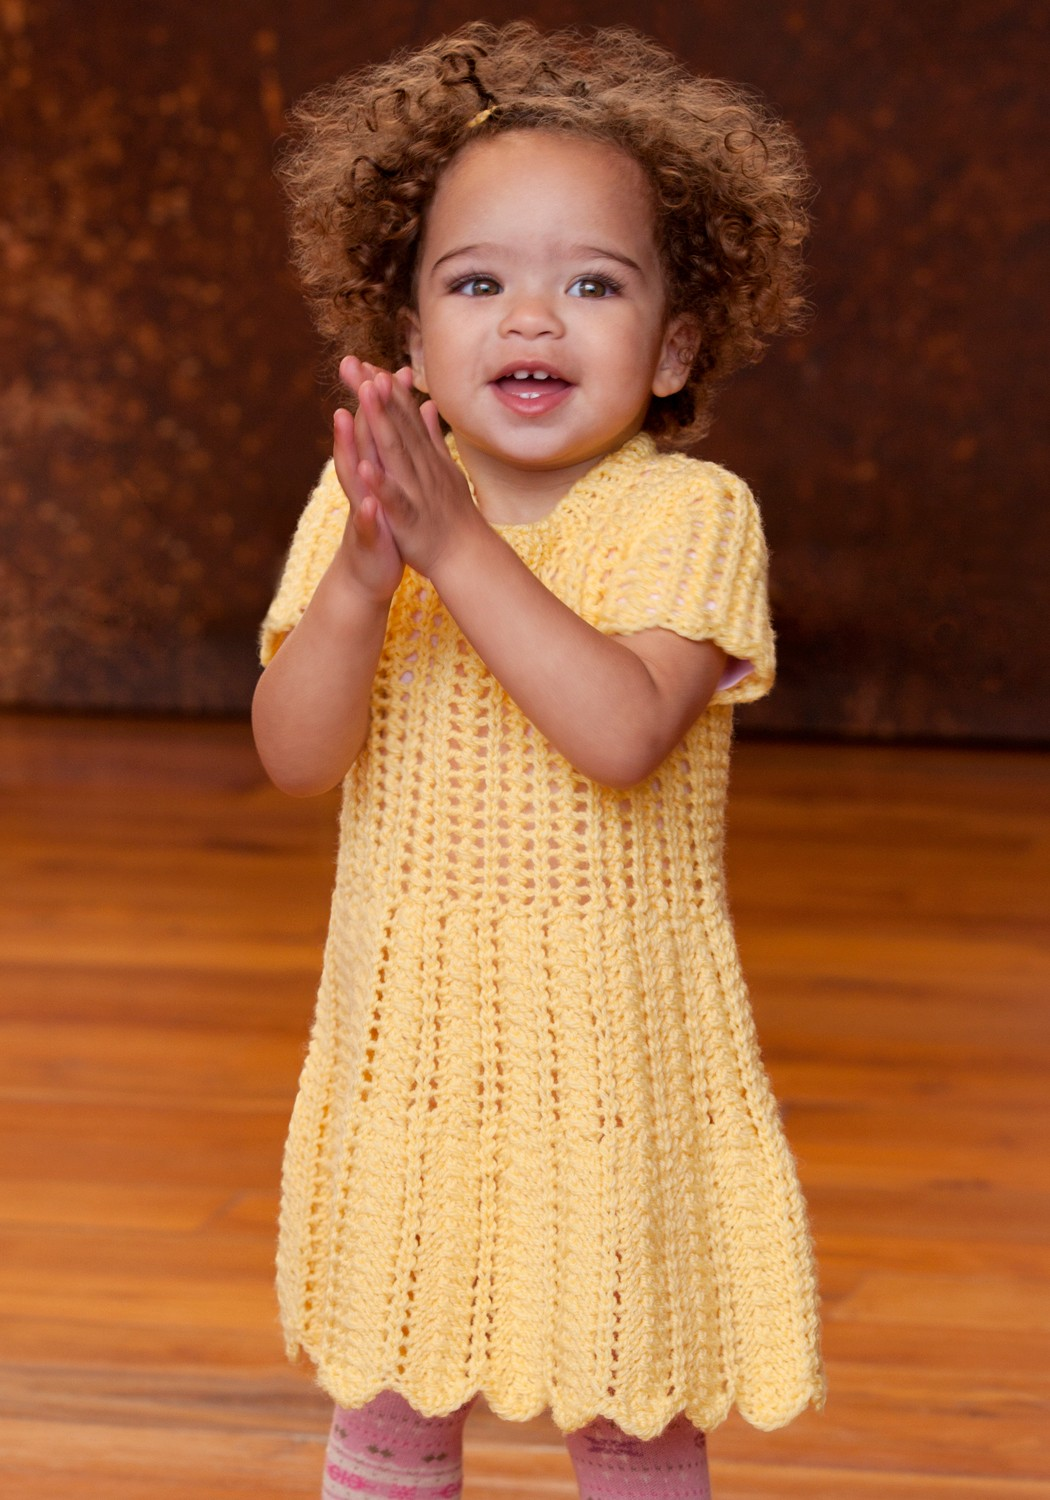 Baby Knit Sweater Dress Pattern